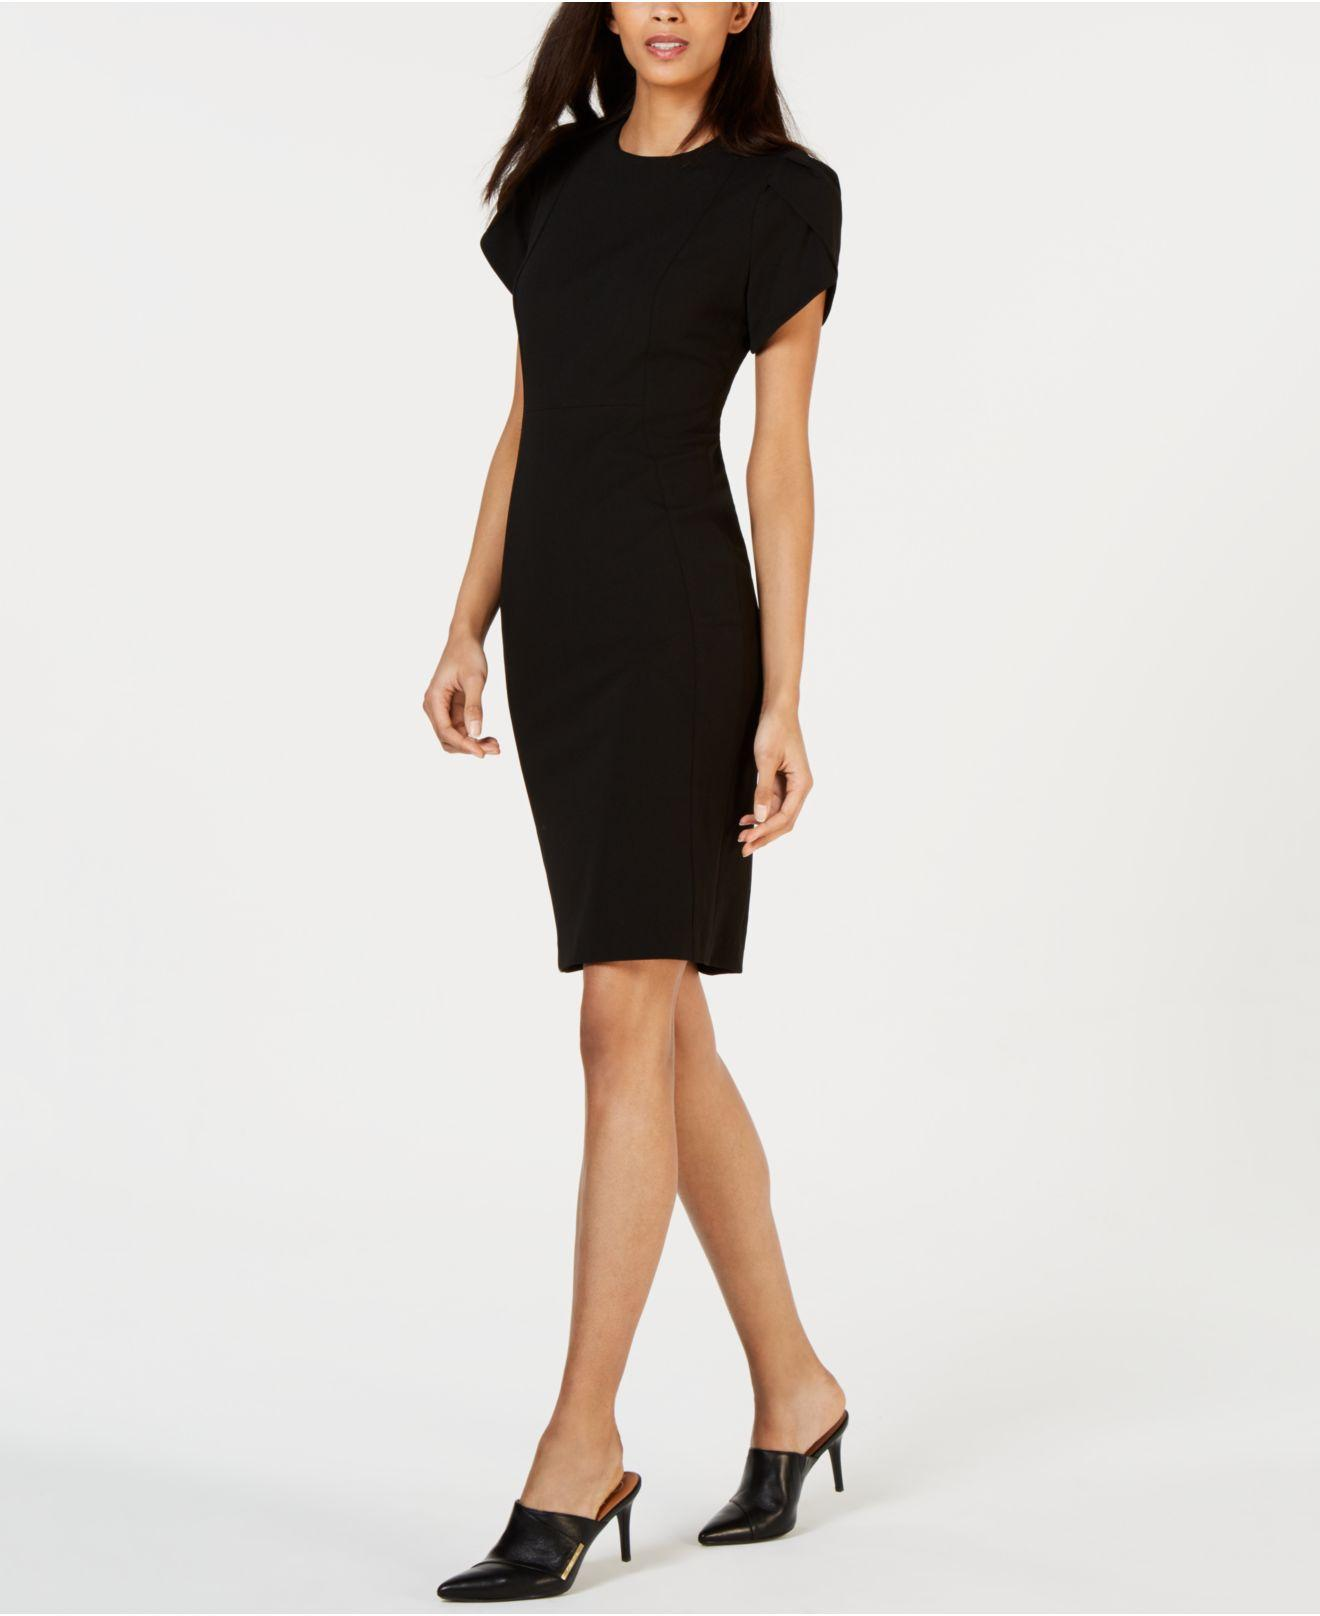 d5da4b83 Calvin Klein Petite Tulip Puff-sleeve Sheath Dress in Black - Lyst